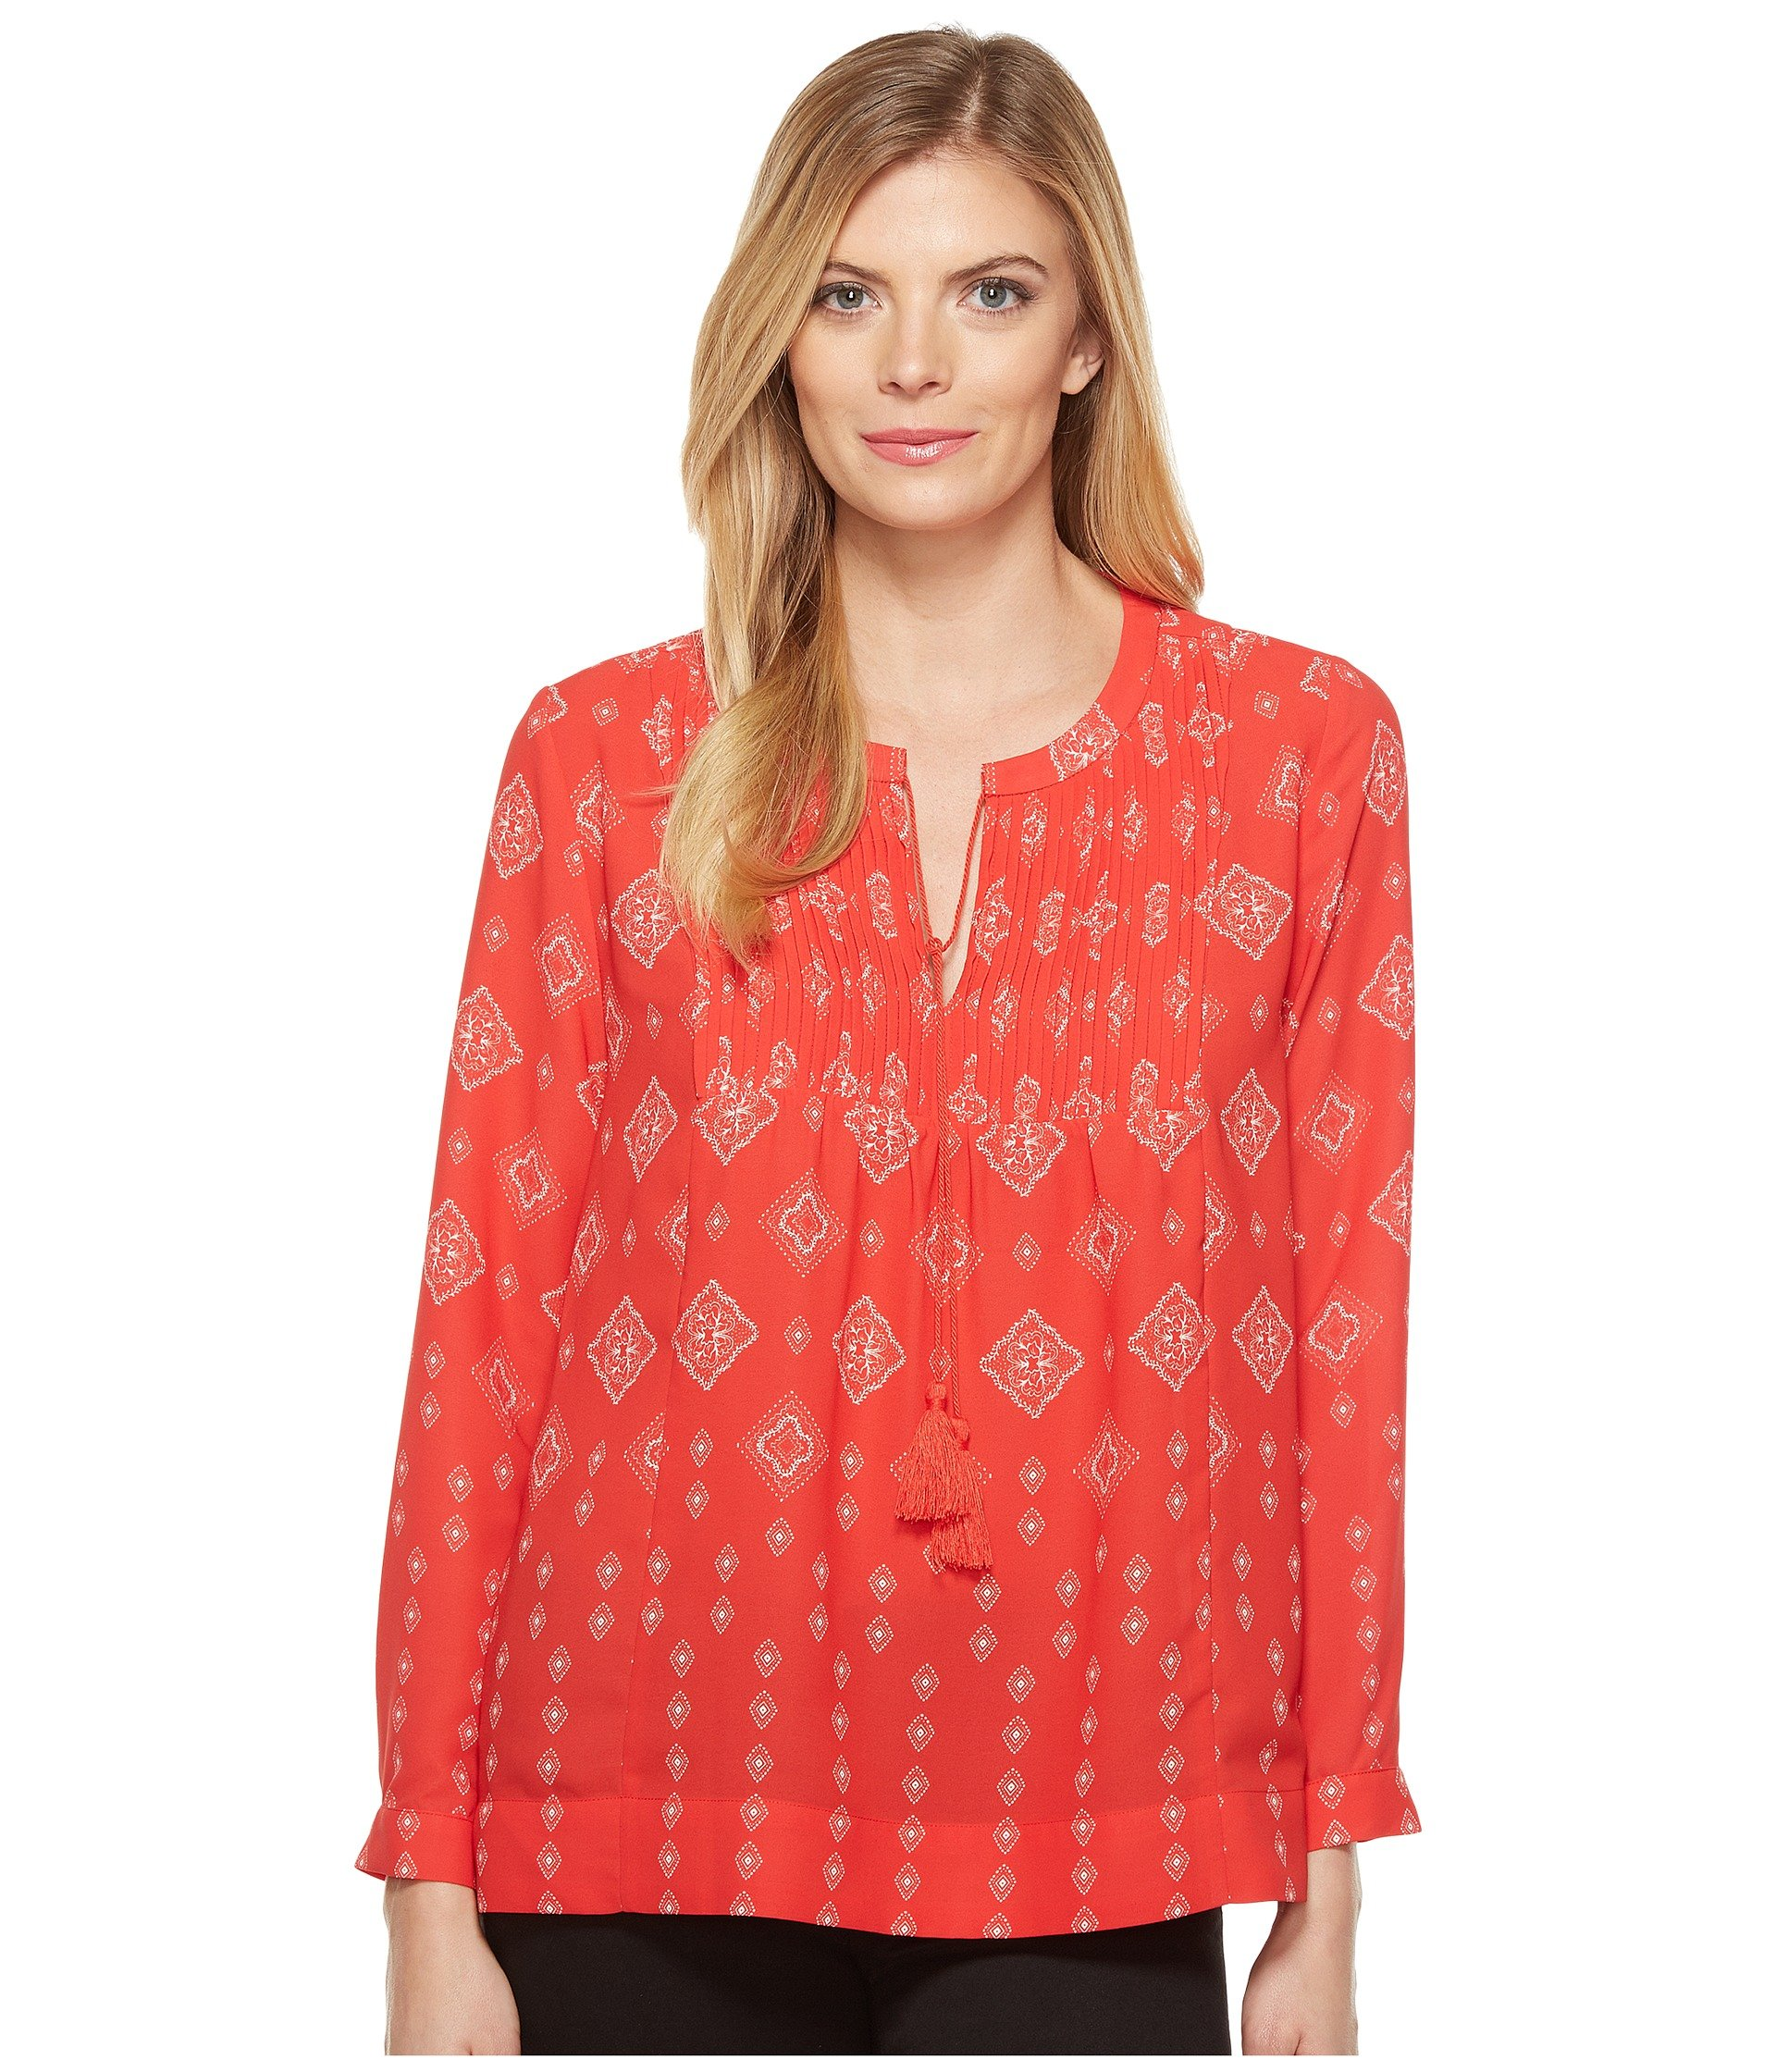 Bandana Print Blouse, Countryside Kerchief Haute Rough